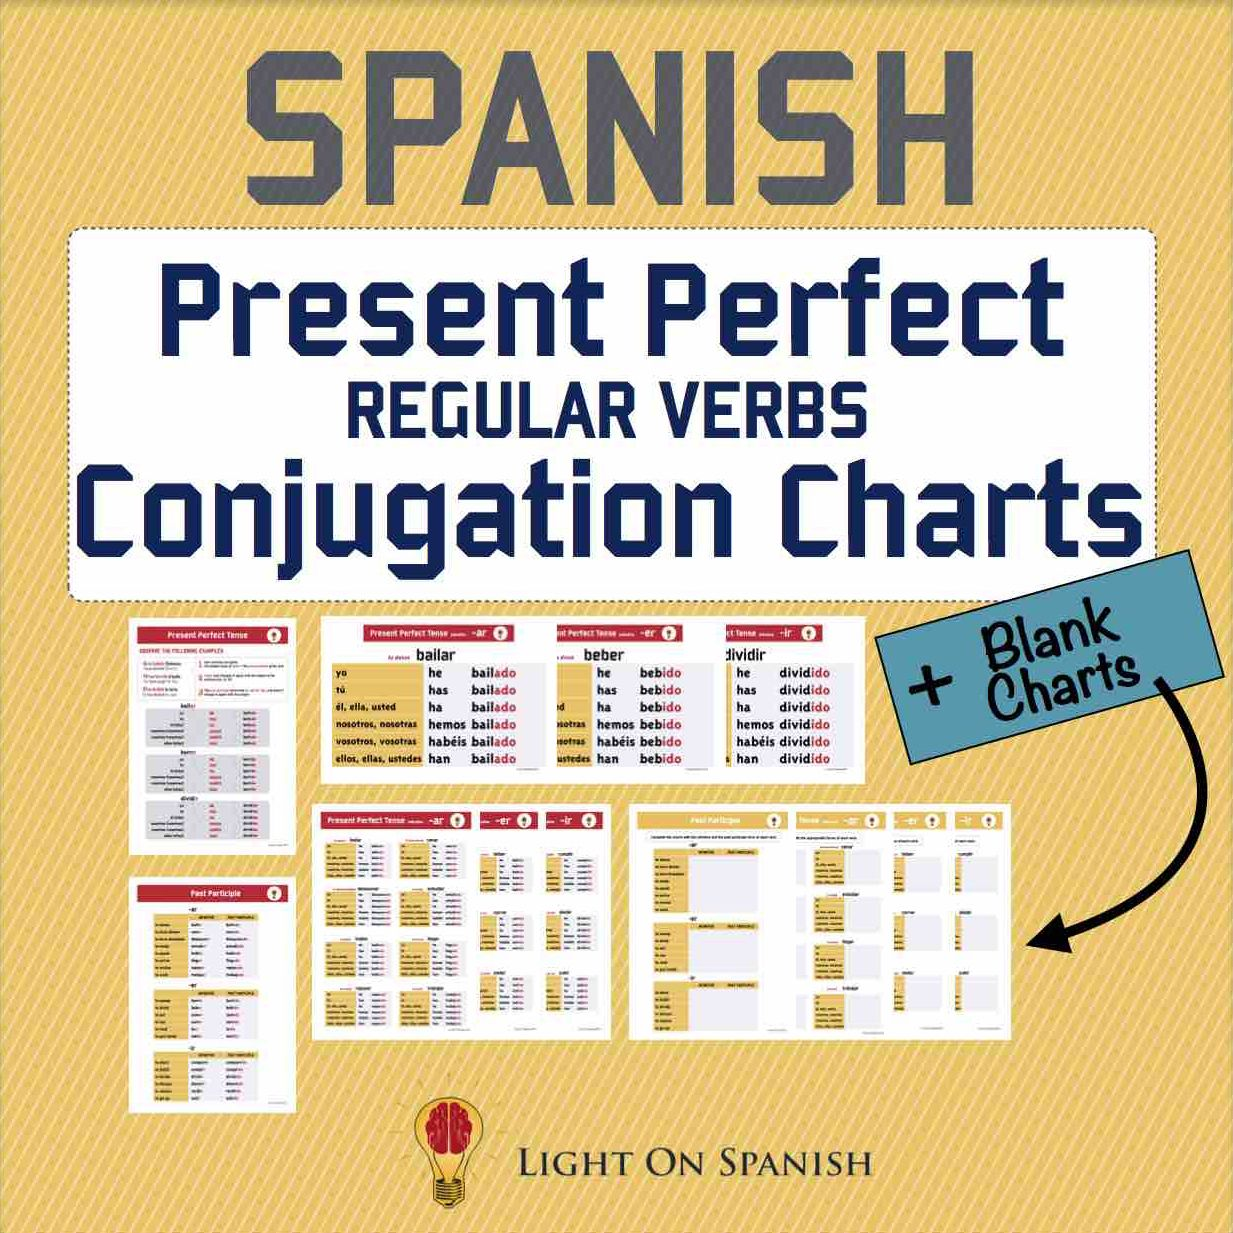 Spanish Present Perfect Regular Verbs Conjugation Charts